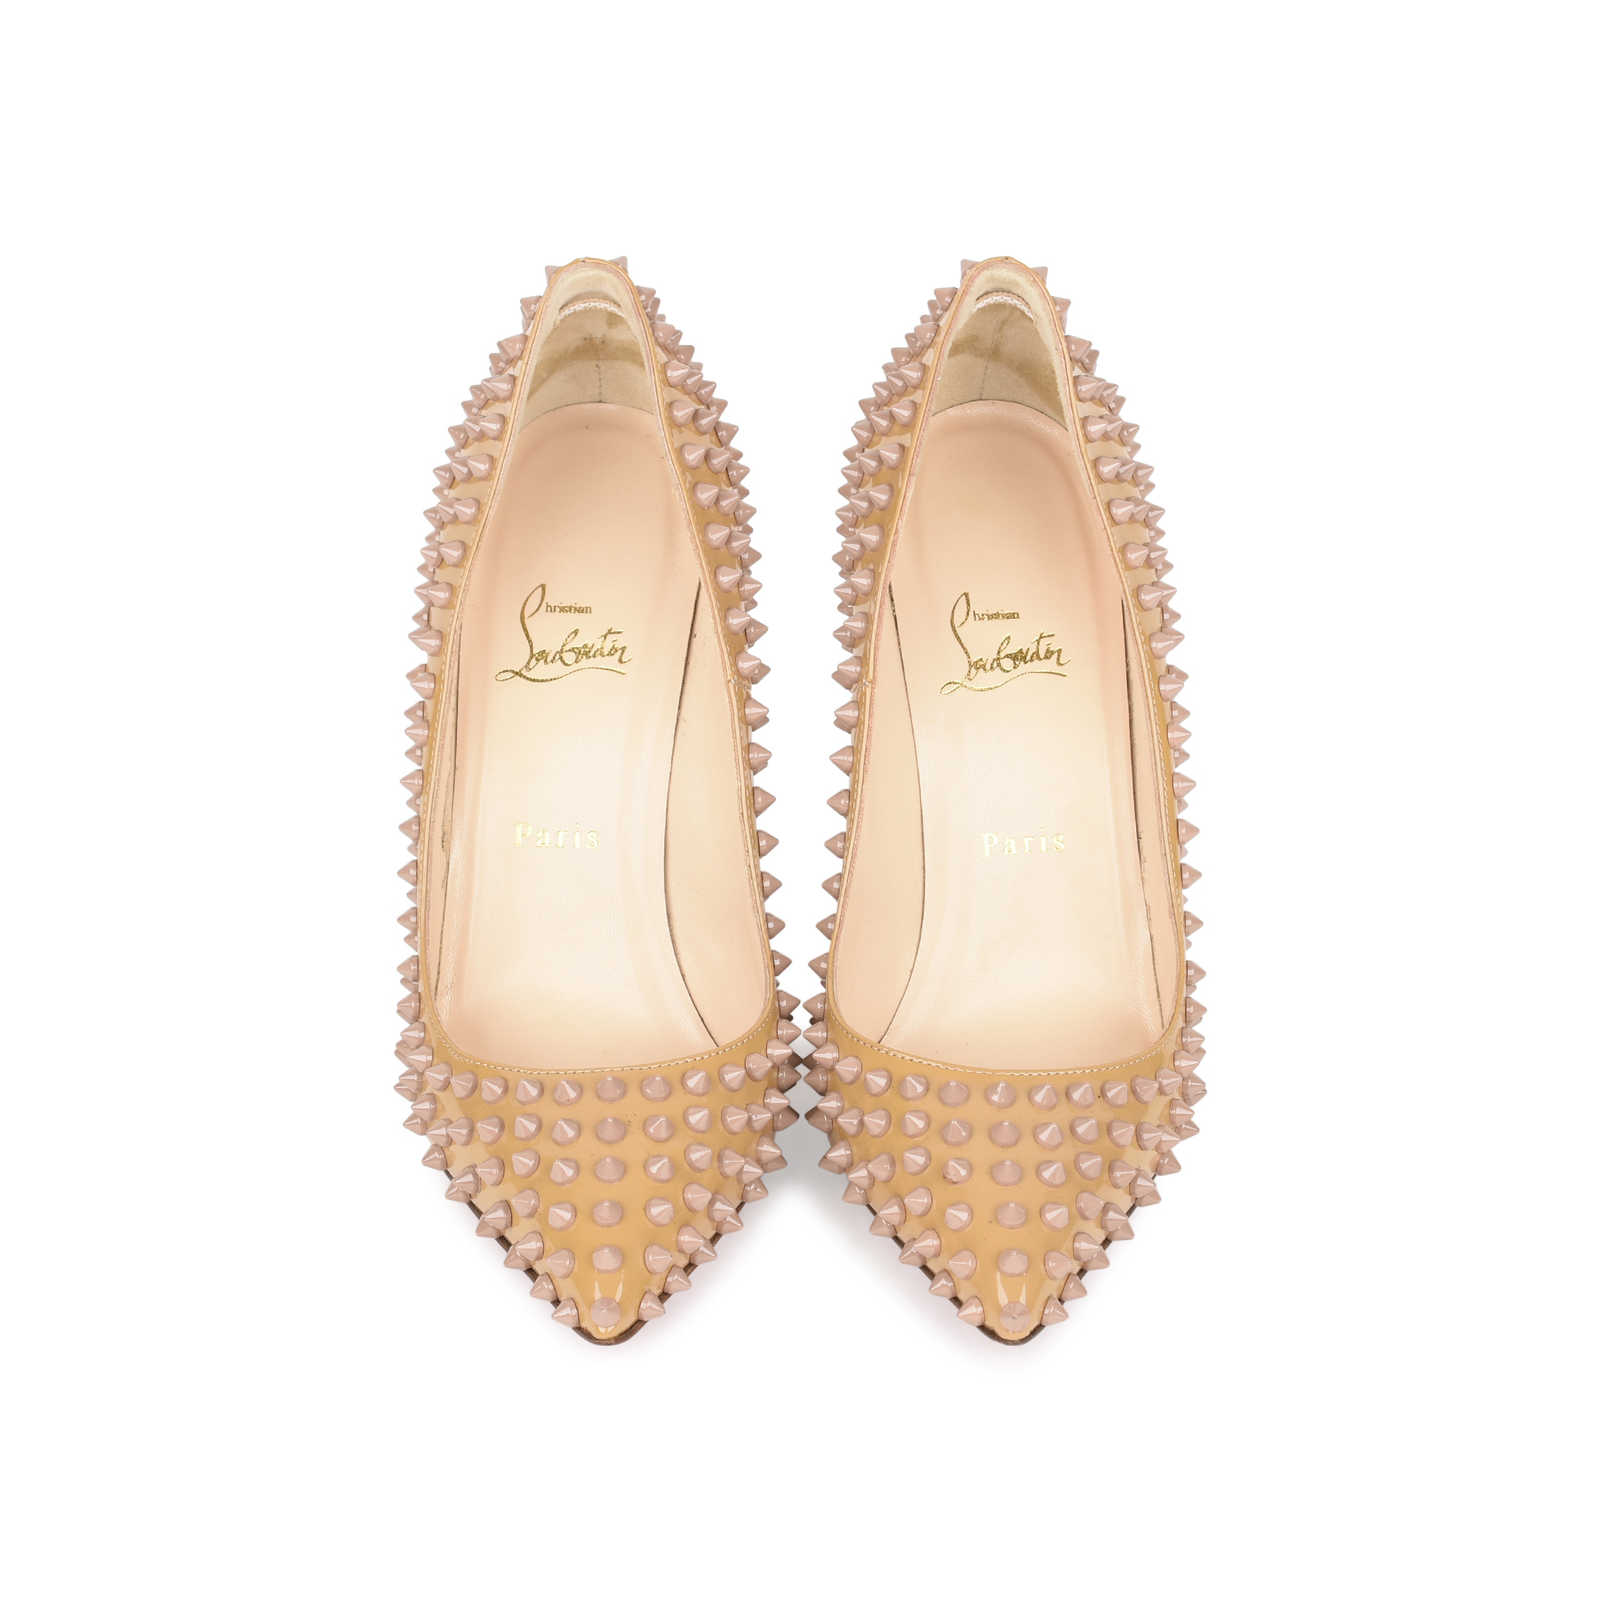 Authentic Pre Owned Christian Louboutin Pigalle Spike Pumps (PSS-532-00002)  ... 4dbab72282